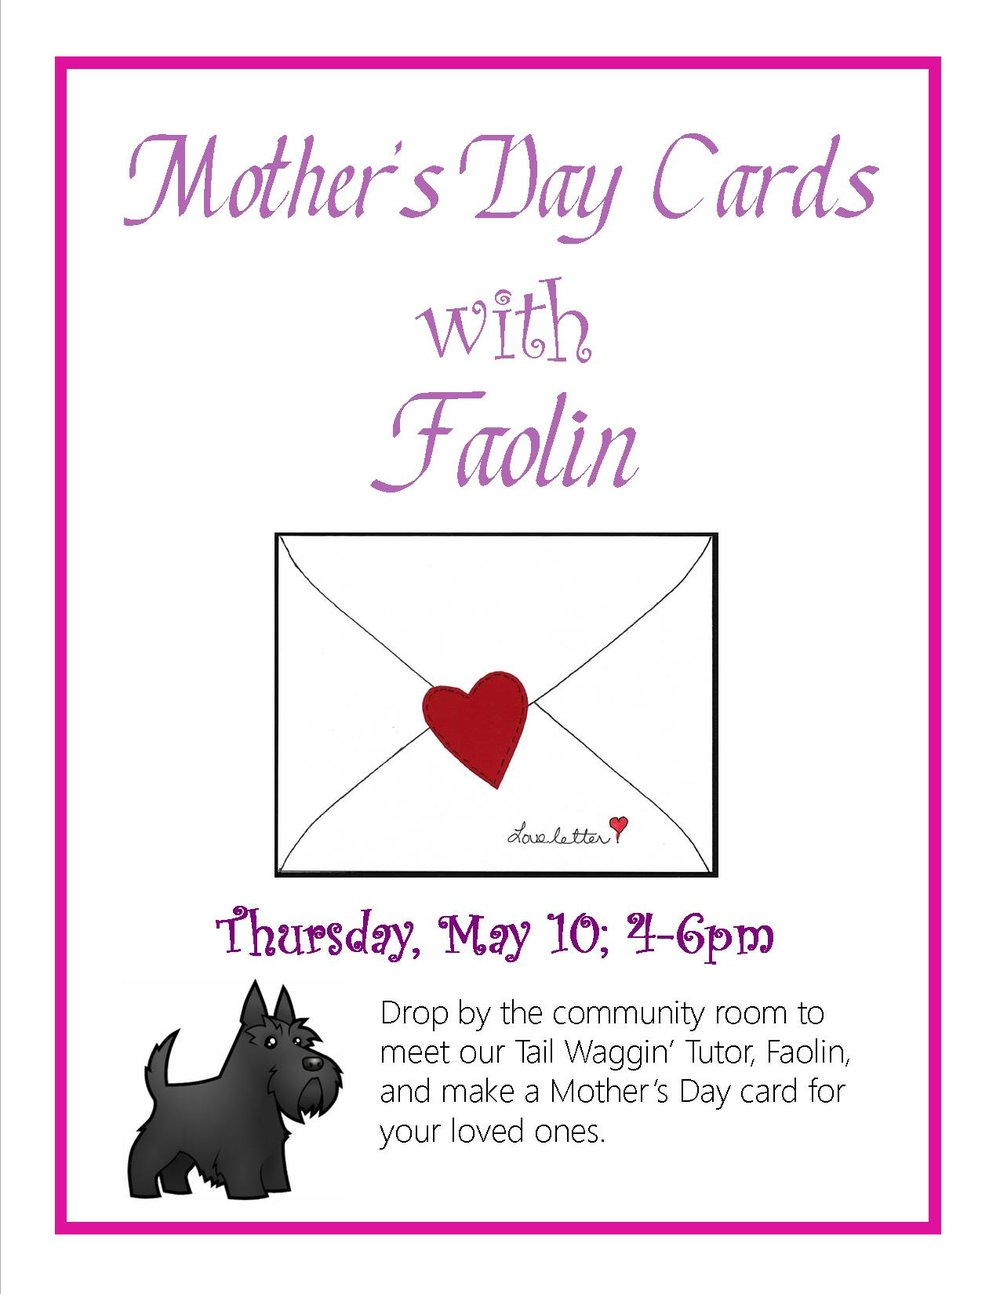 Mother's Day Cards with Faolin.jpg